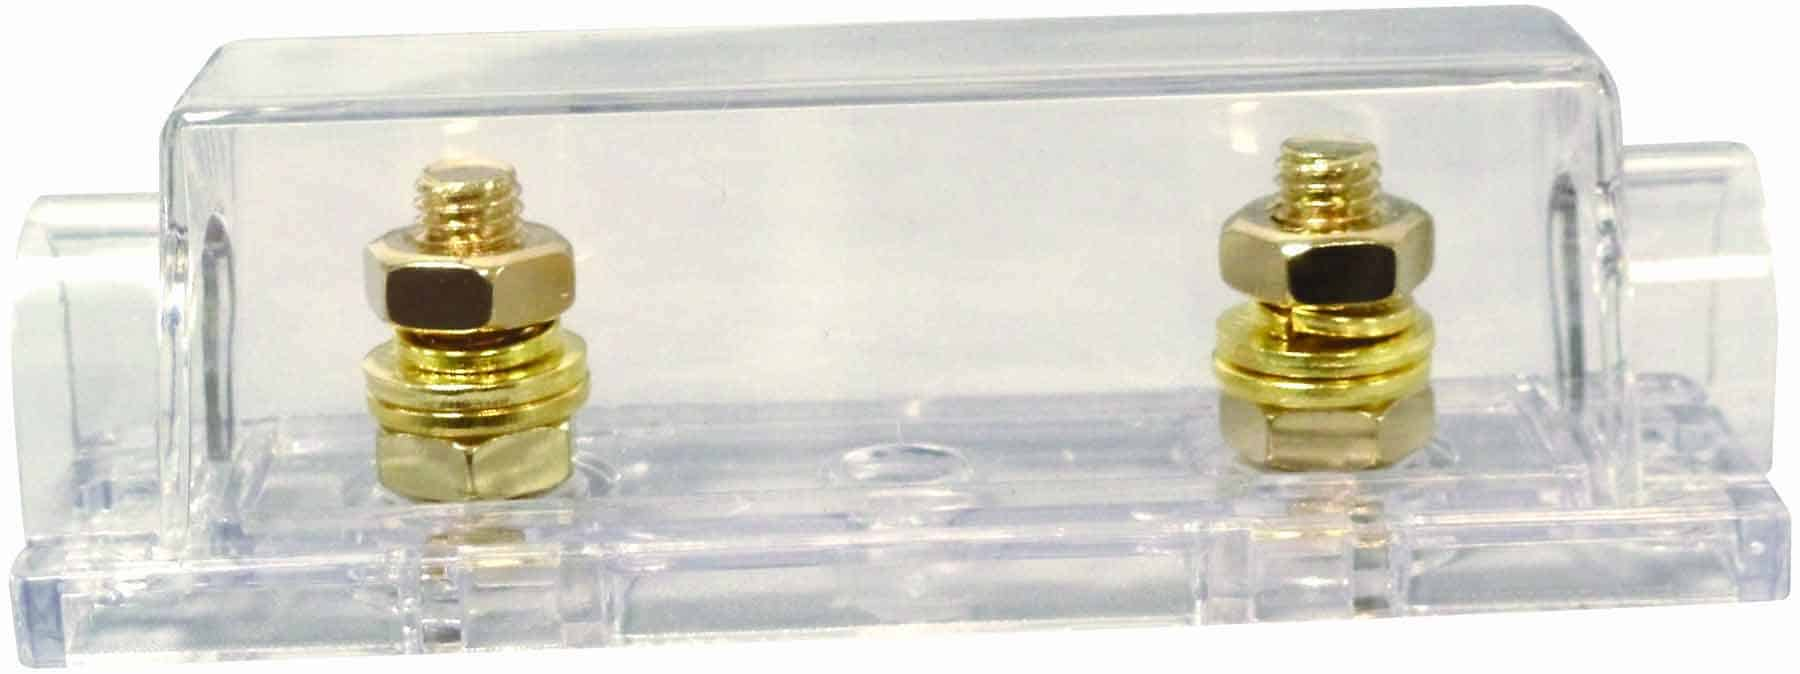 ANL82 - Twinpoint Heavy Duty ANL Fuse Holder Accepts Ring Terminals